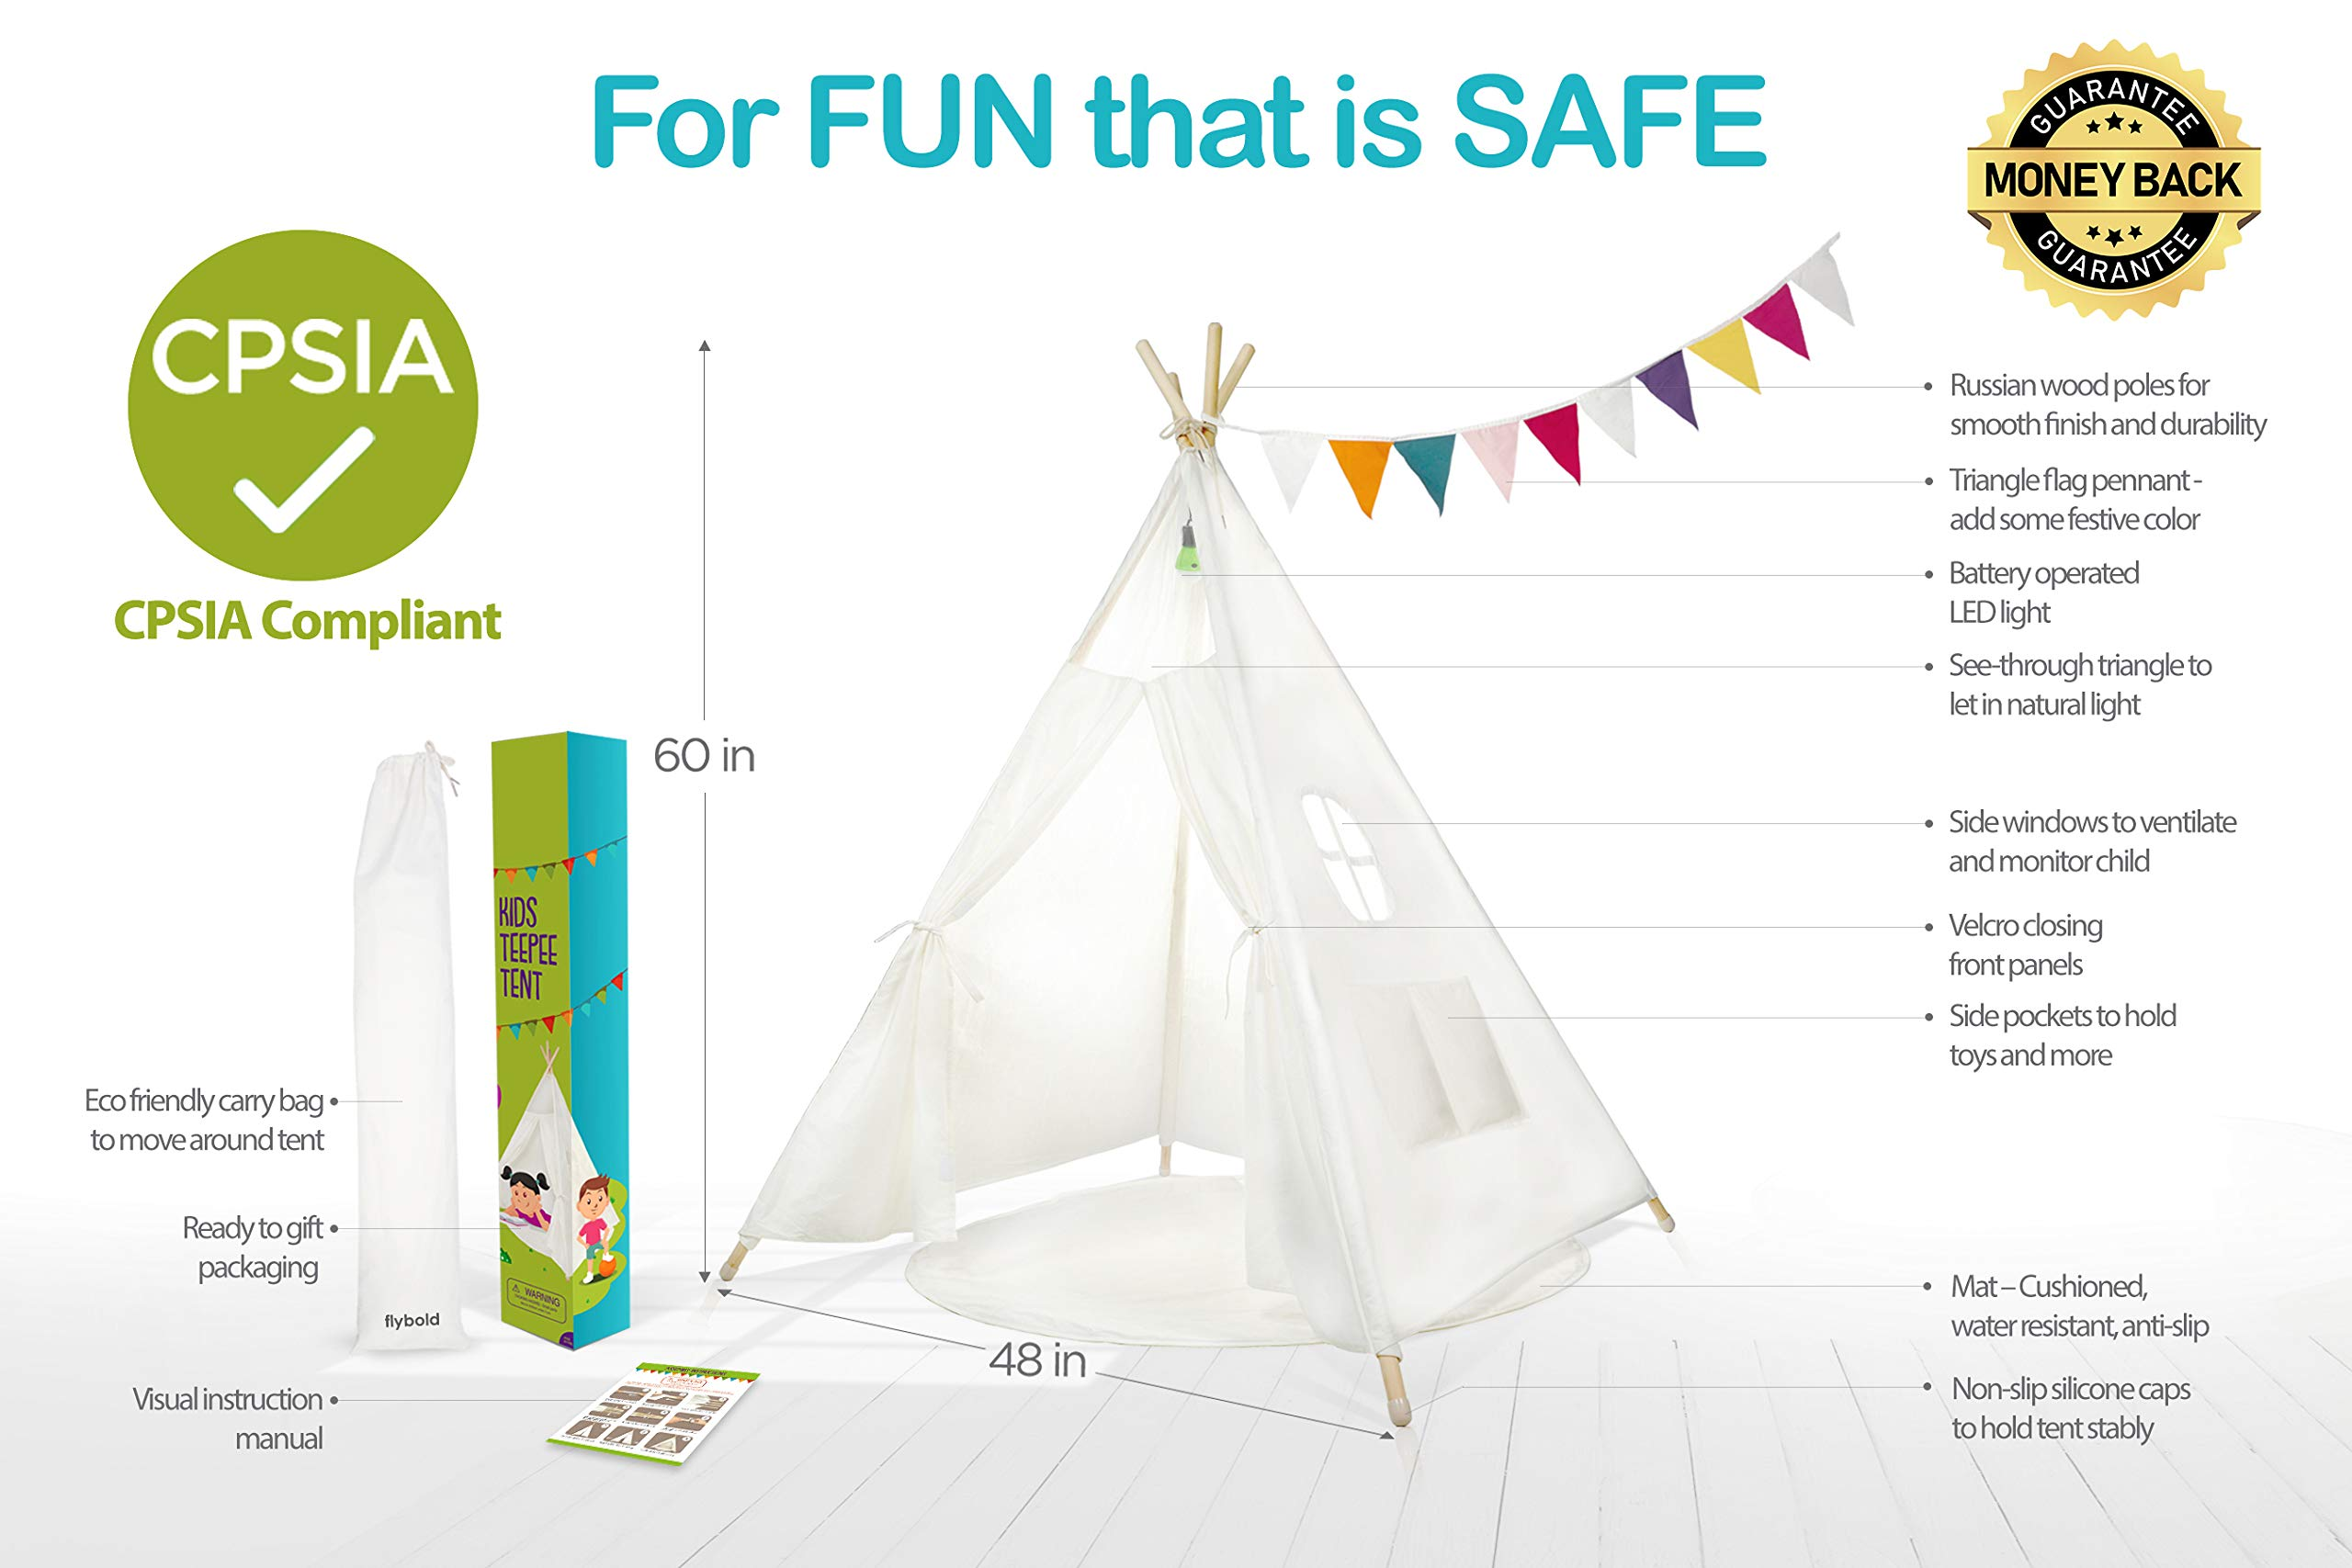 Kids Teepee Tent Children Play Tent 5 ft Raw White Cotton Canvas Four Wooden Poles Thick Cushion Mat LED Light Banner Carry Case Indoor Outdoor Playhouse for Girls and Boys Childrens Room Decor by flybold (Image #2)